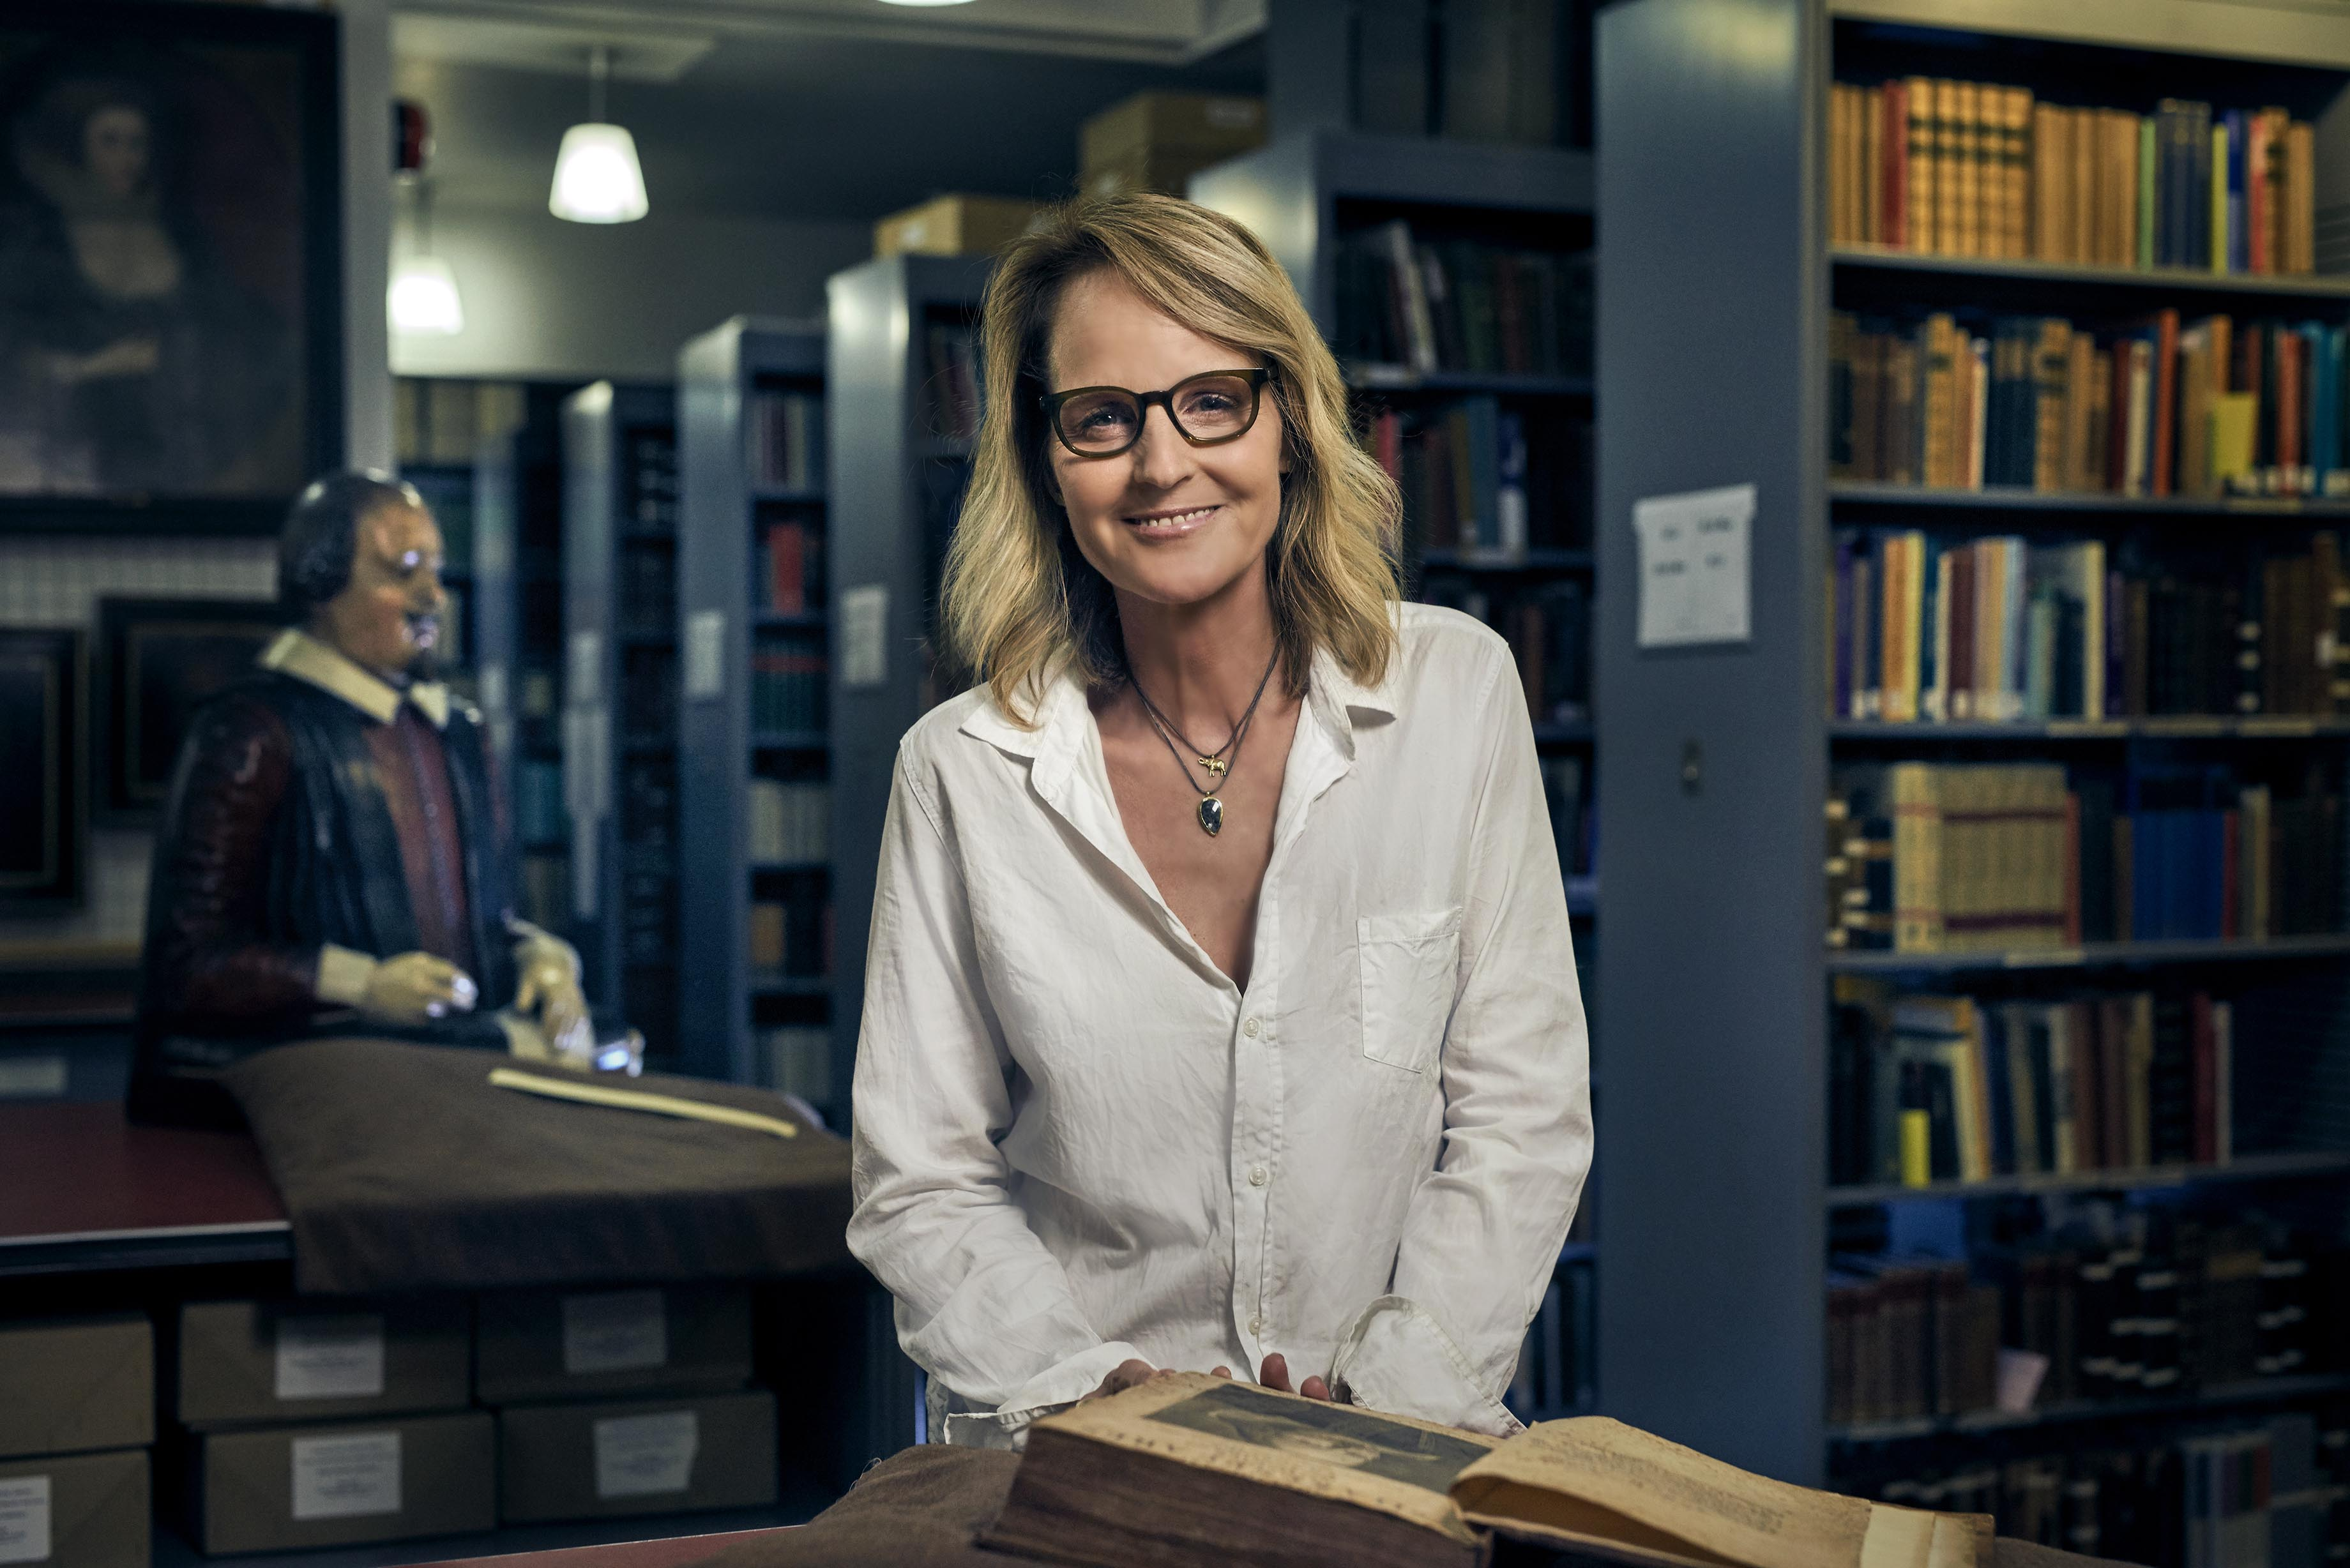 Helen Hunt sits at a table with bookshelves and a statue of Shakespeare behind her